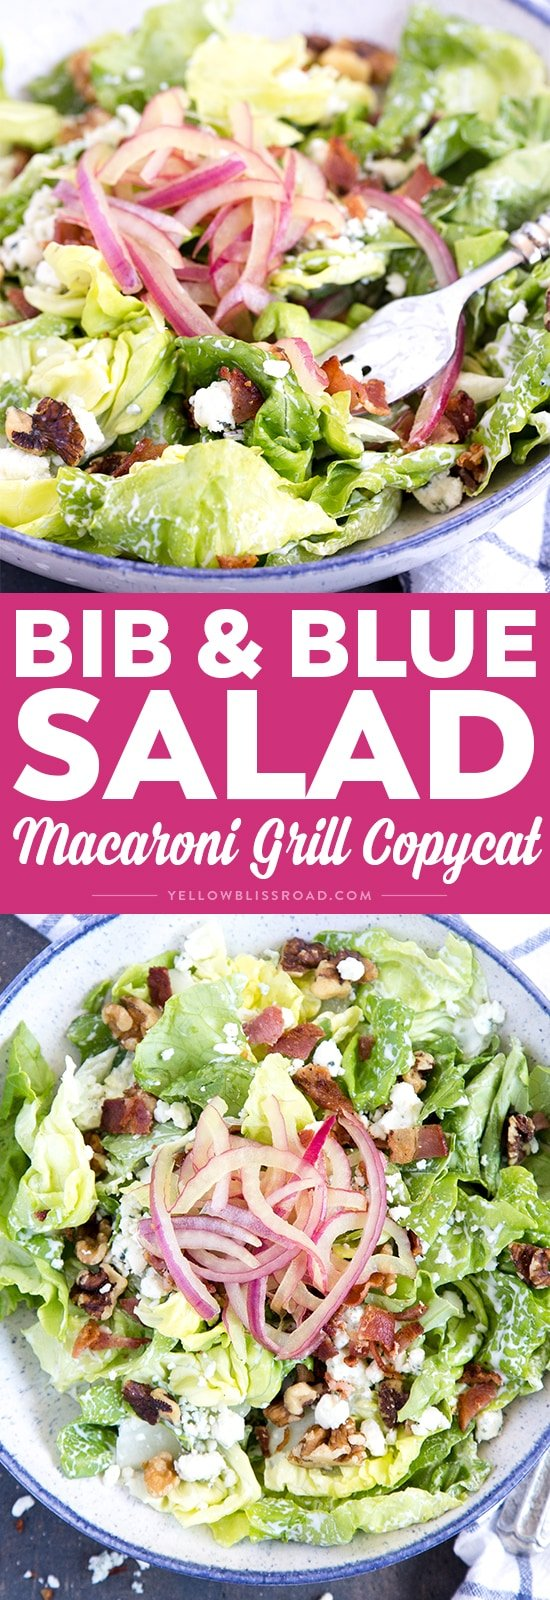 Bib & Blue Salad with blue cheese, walnuts, pickled red onions and bacon. (Macaroni Grill copycat)